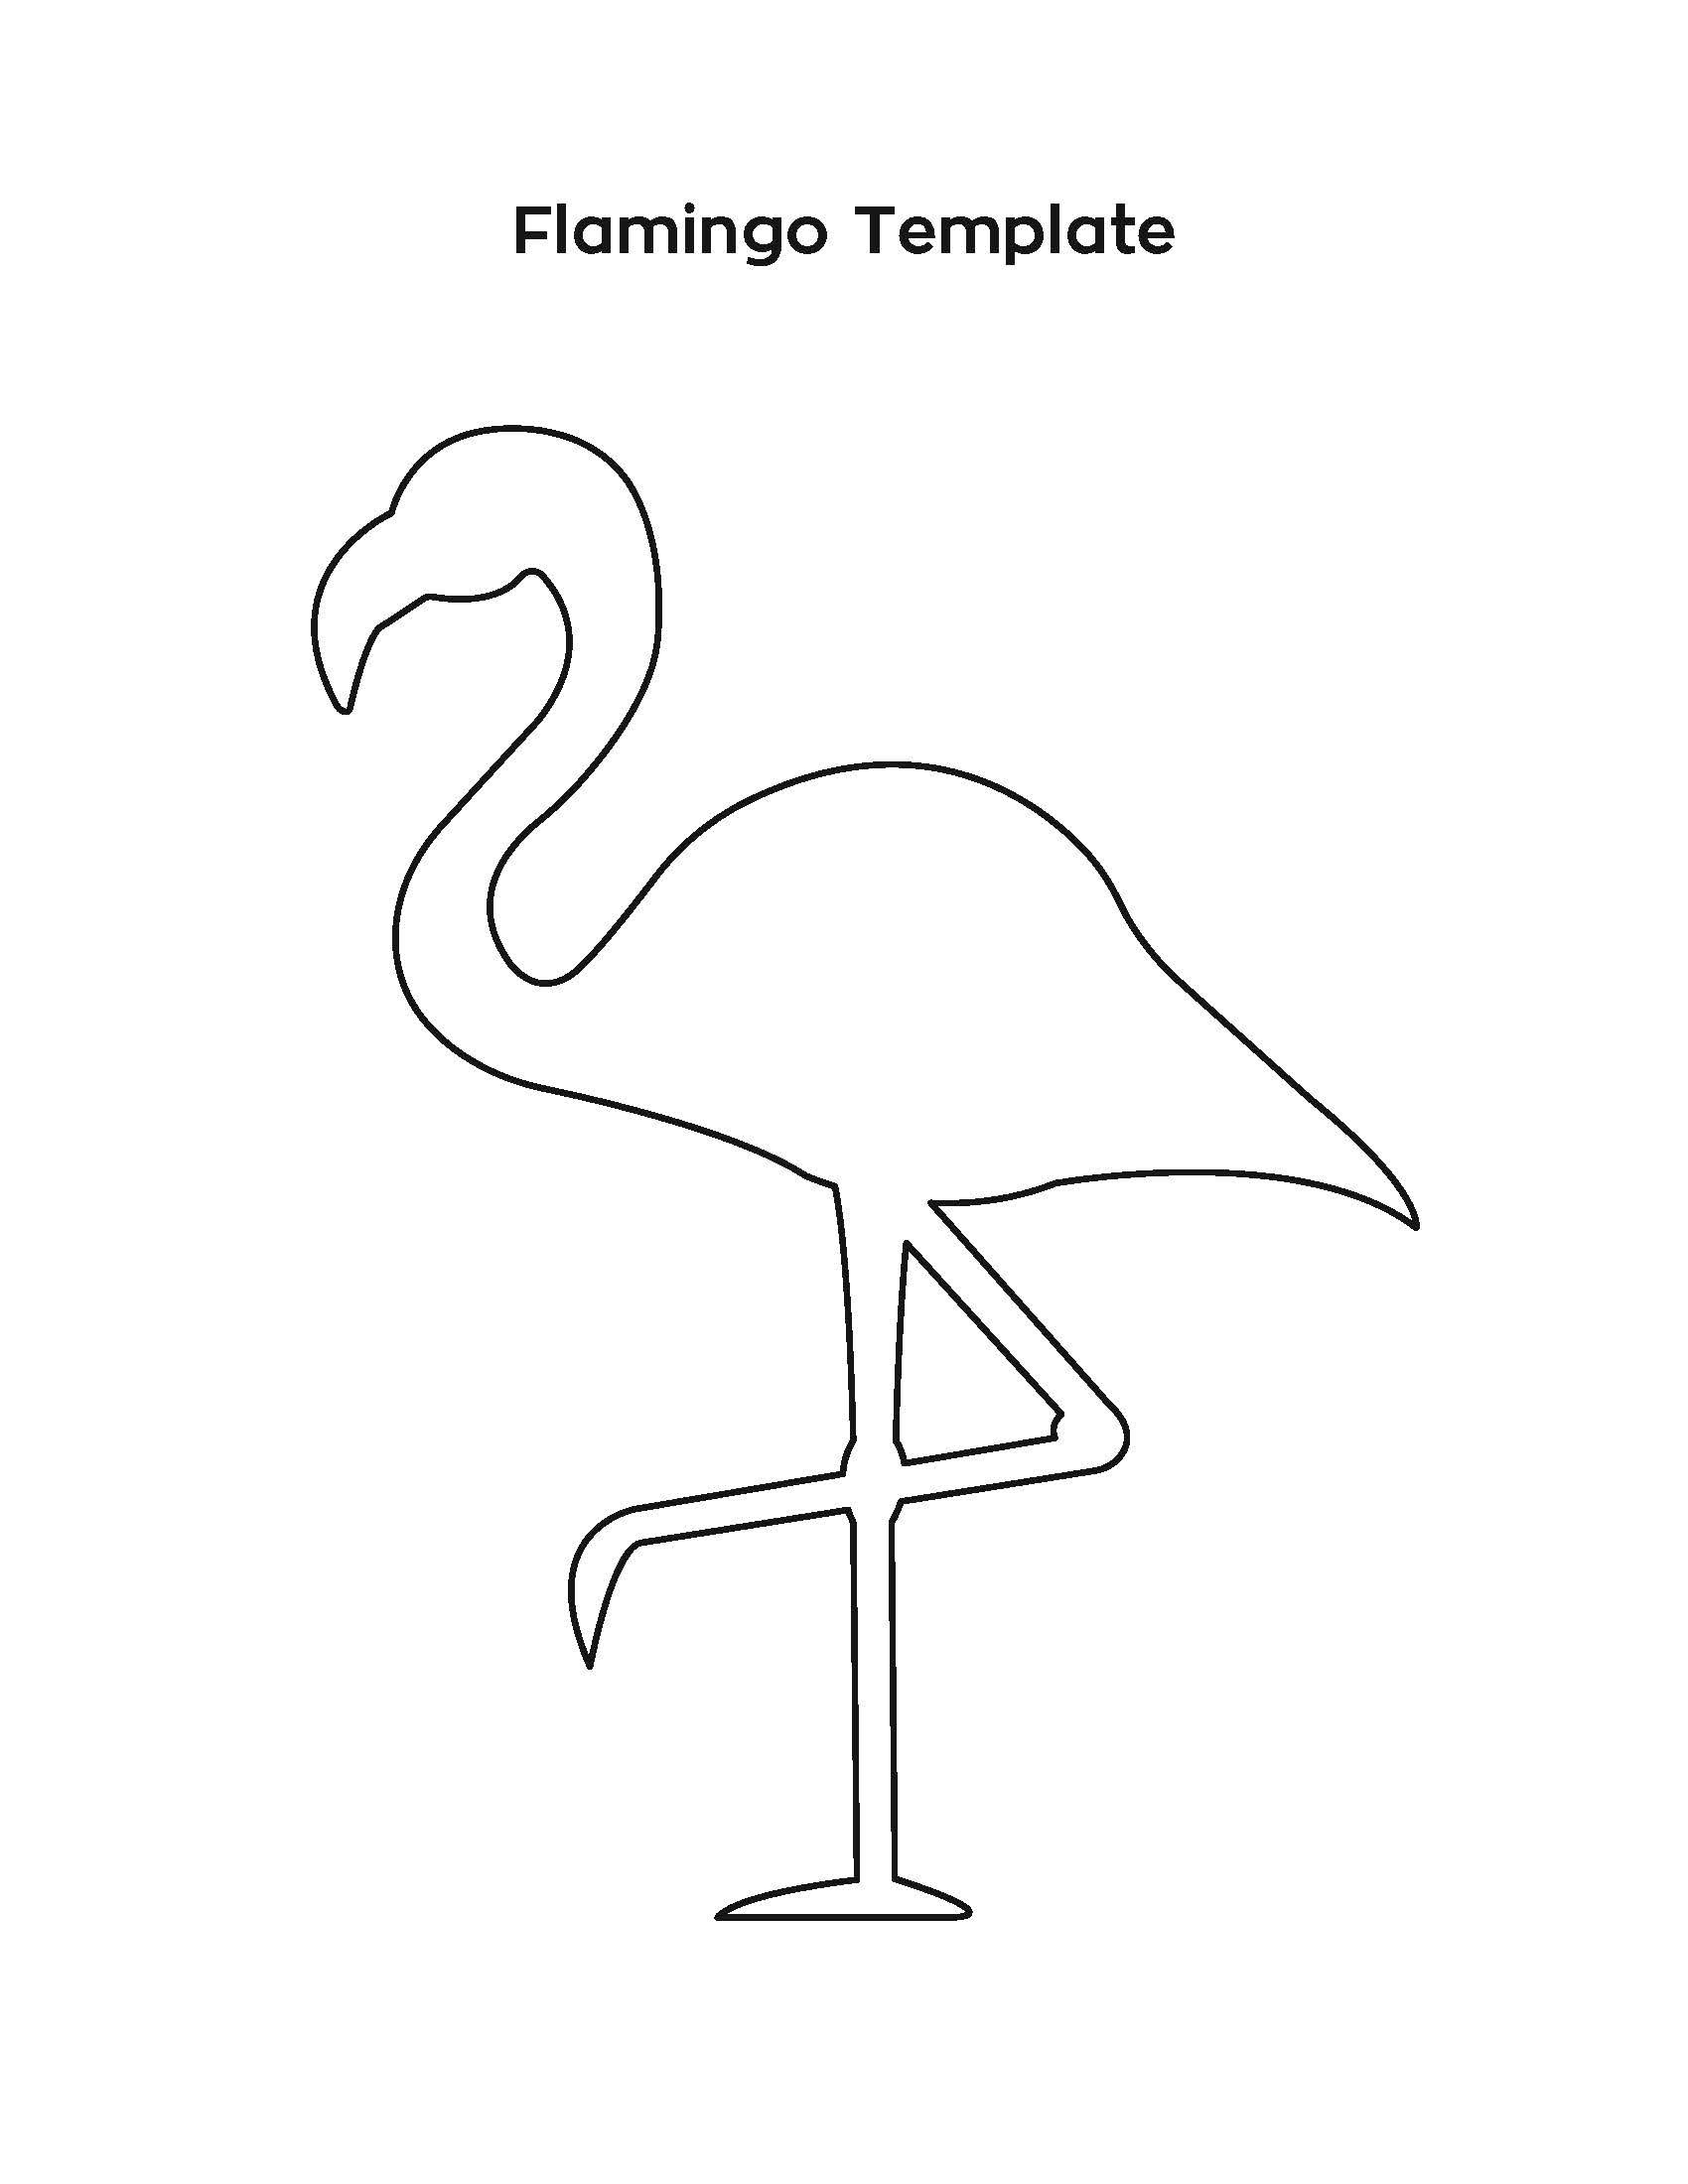 Flamingo Template Little Lamb Adventurer Club Pinterest